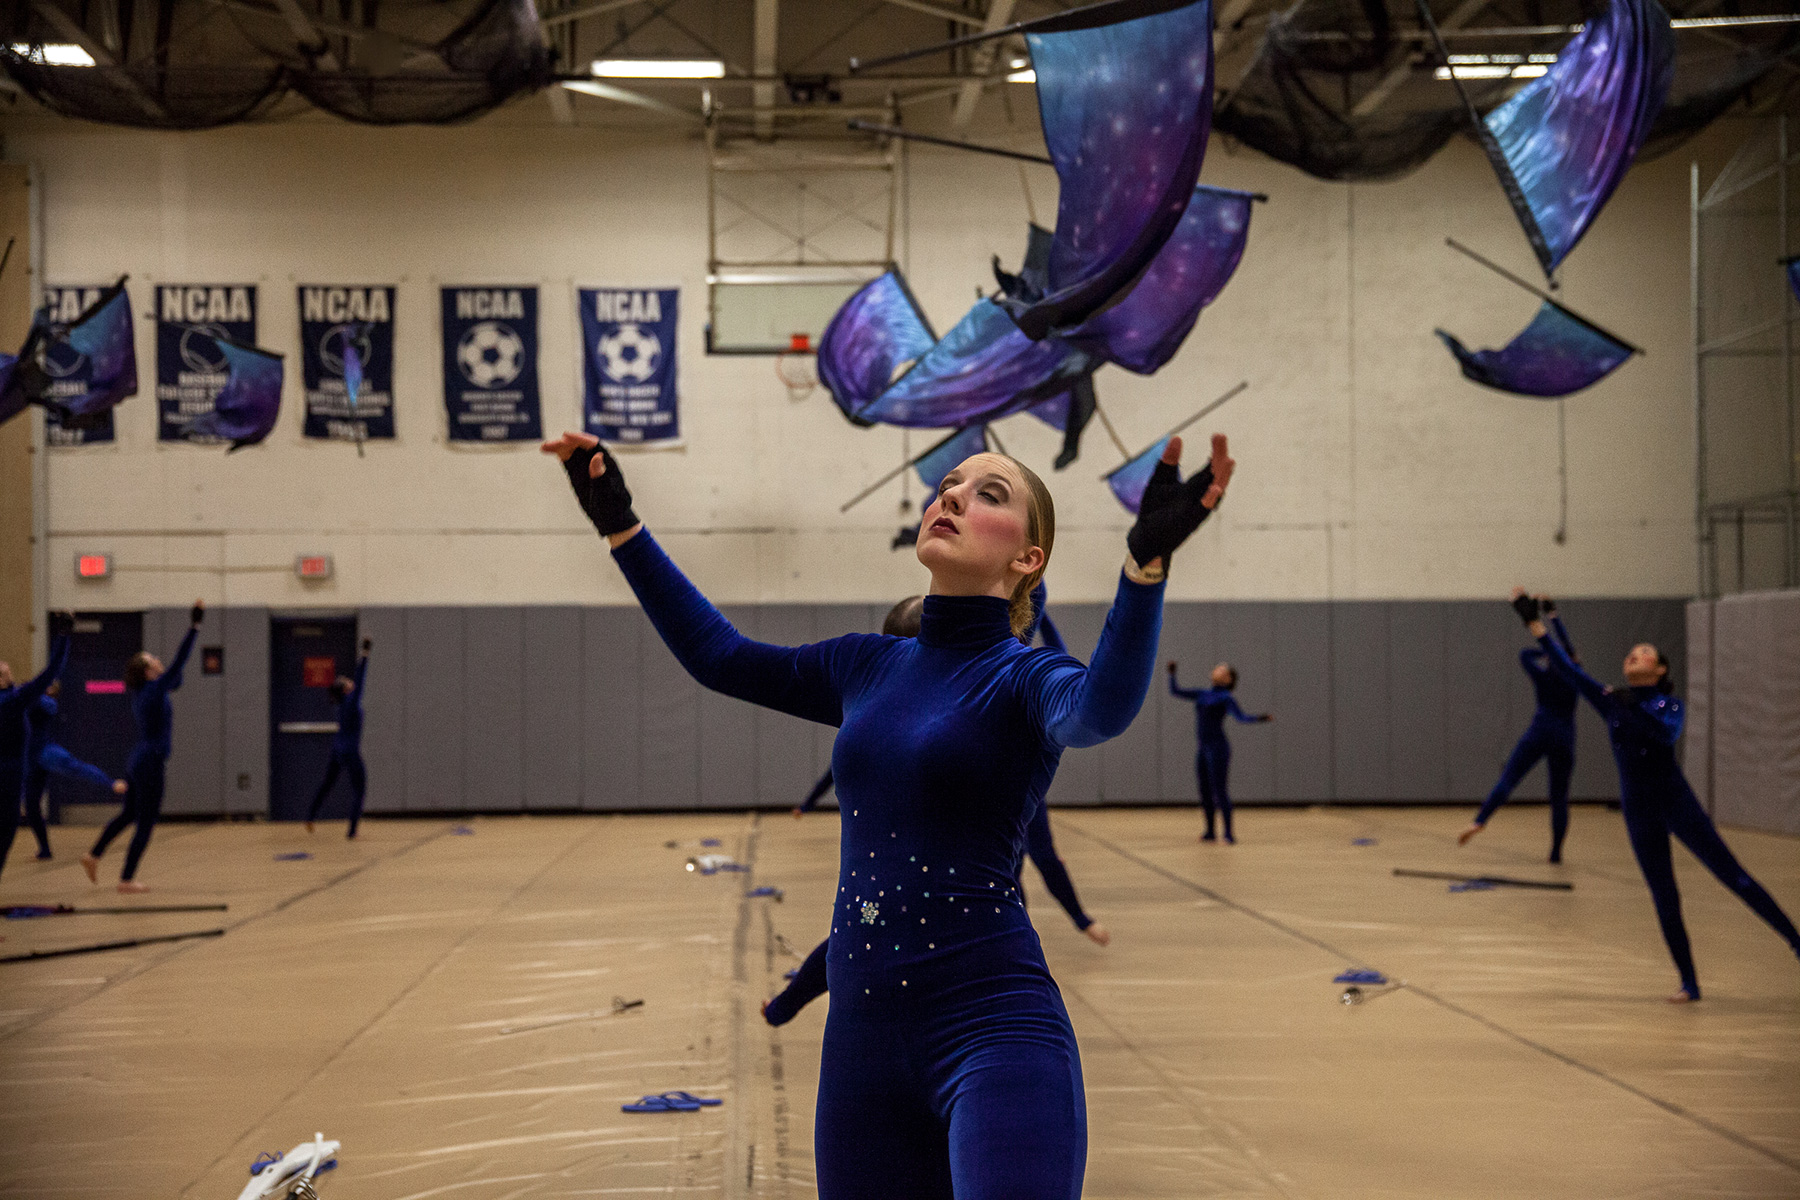 Articles about color guard - Morgan Mcpartland Waits For Her Flag To Descend After Throwing It As The Team Warms Up For Their First Performance At Regionals Click To Enlarge Images